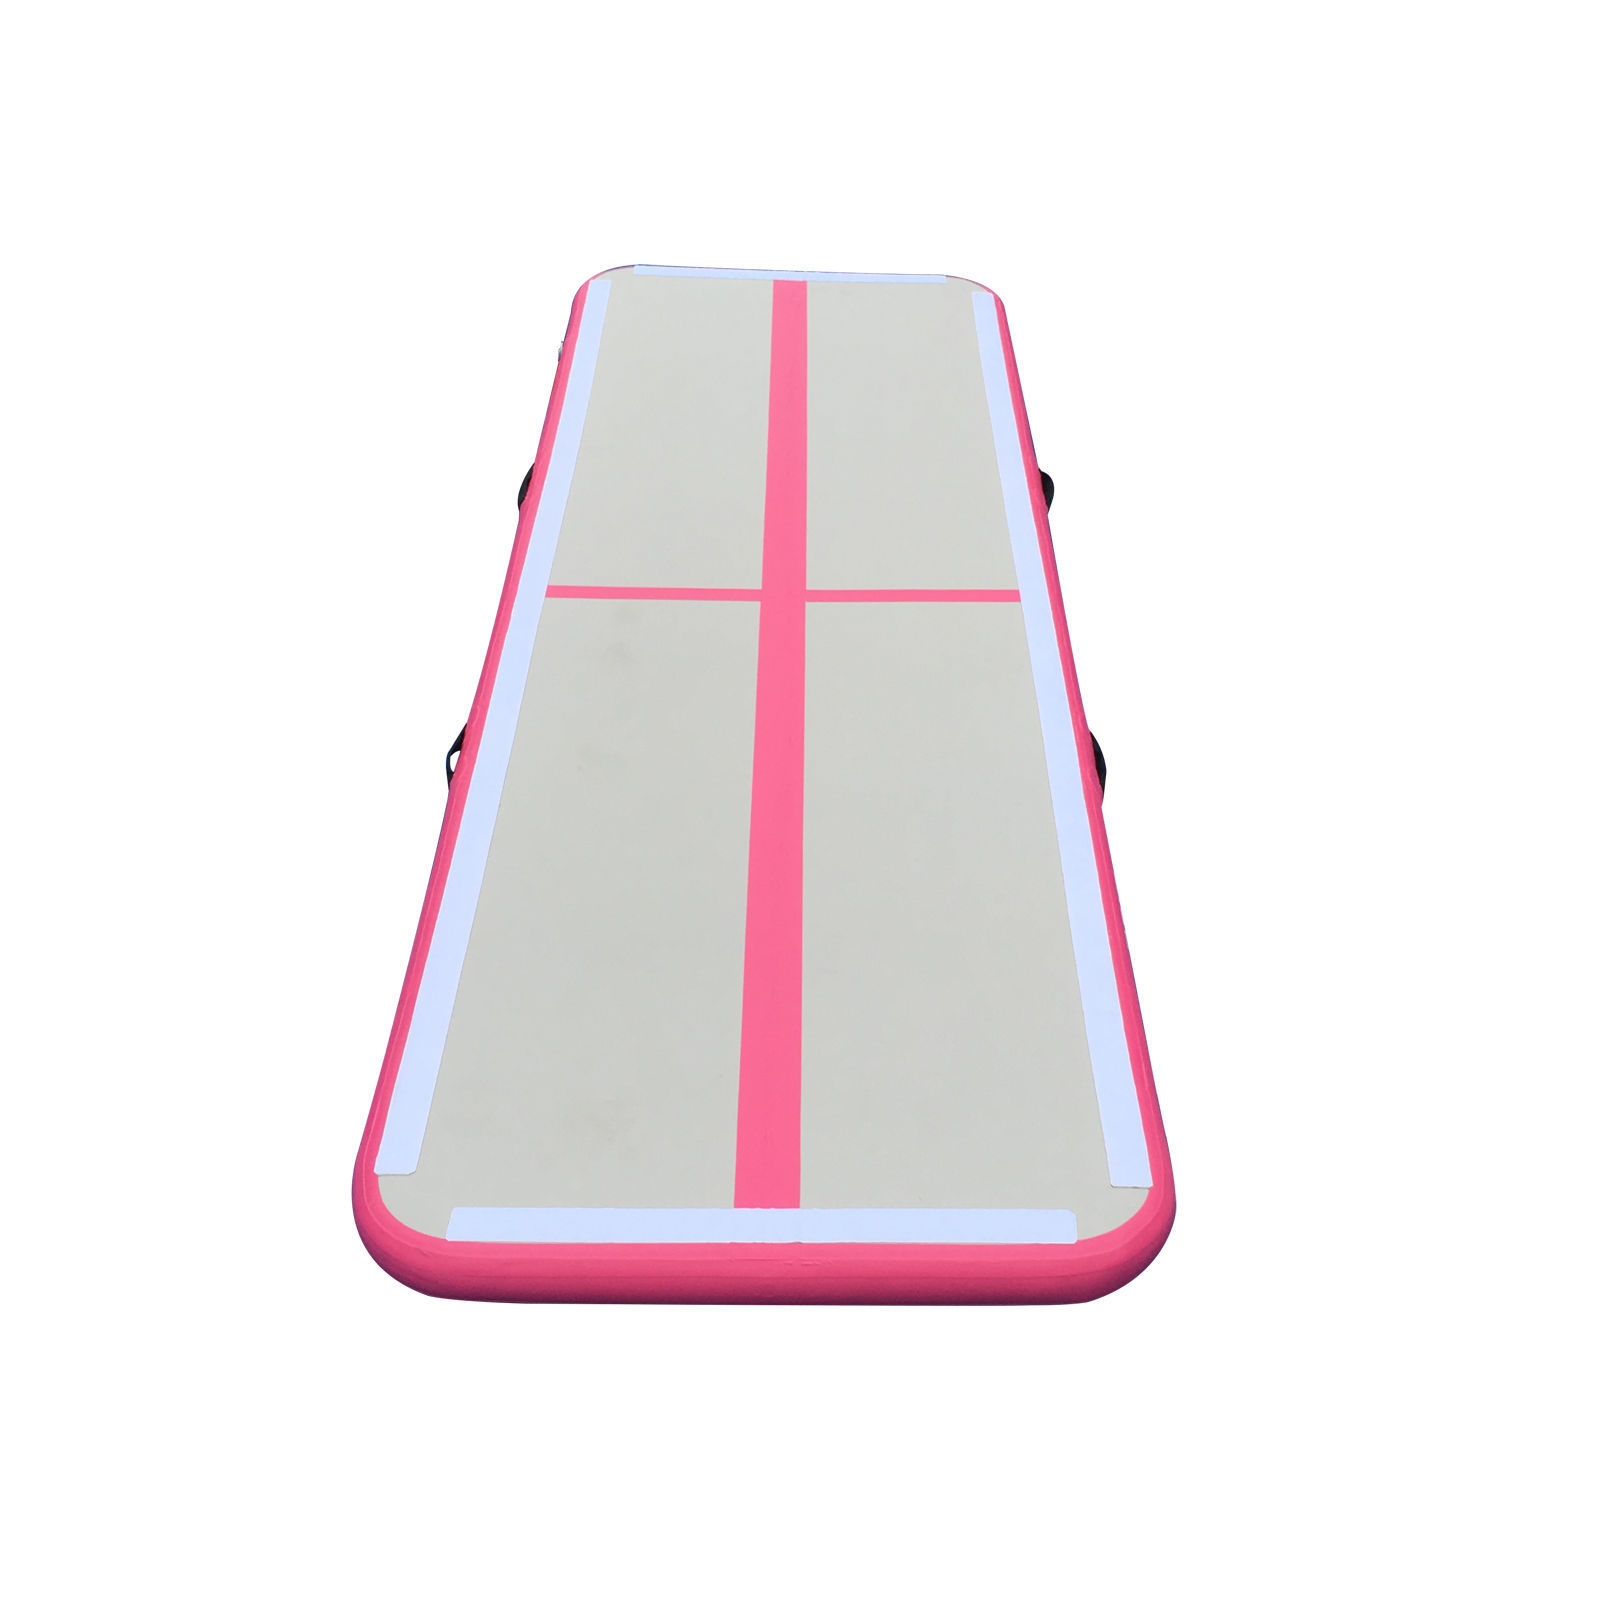 mats thick pin gymnastic gymnastics pinterest home for mat